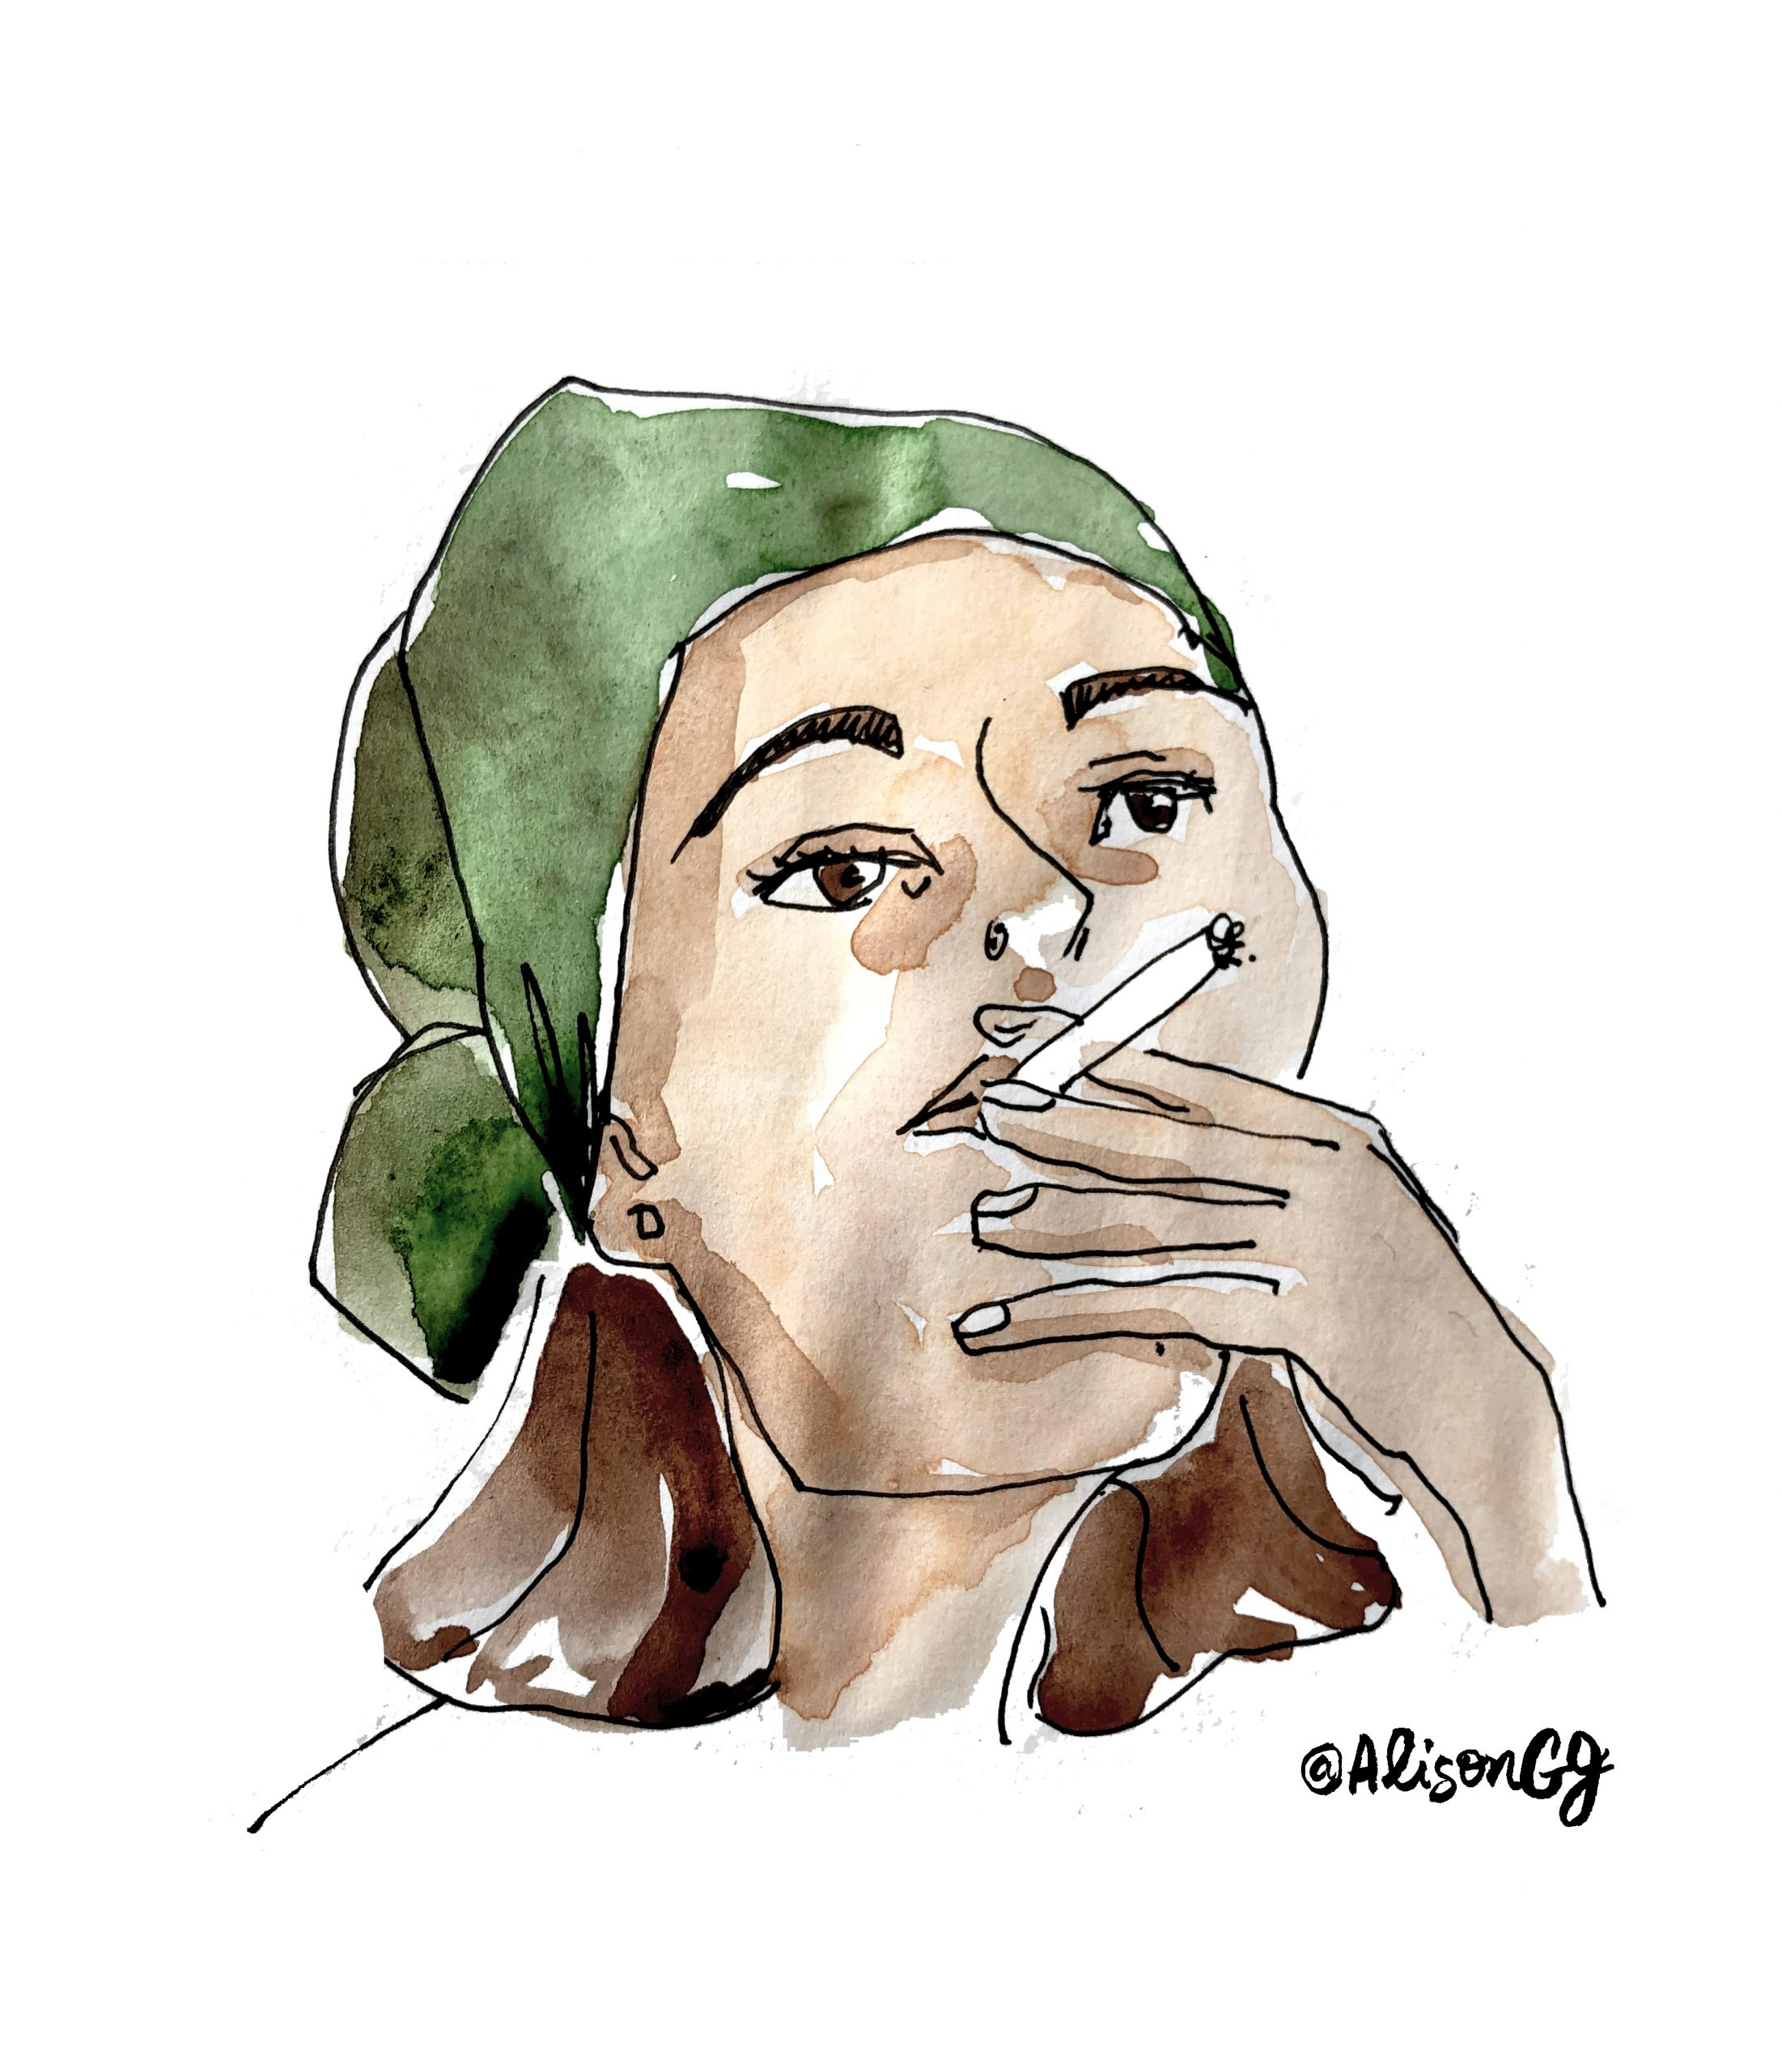 Woman smoking - illustration by Alison Garwood-Jones